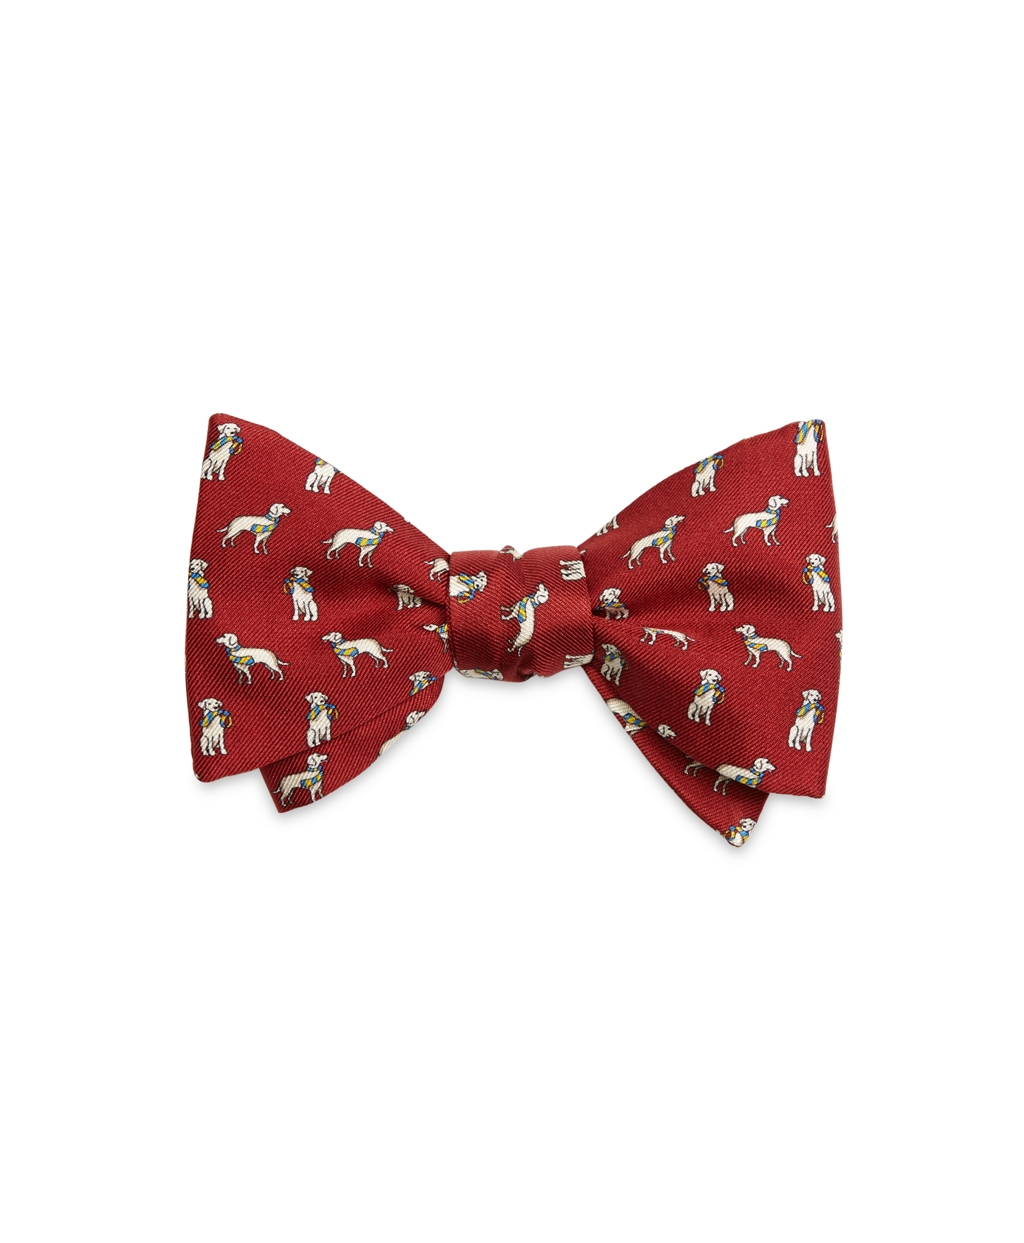 3533ab26050a Brooks Brothers Dog Print Bow Tie in Red for Men - Lyst